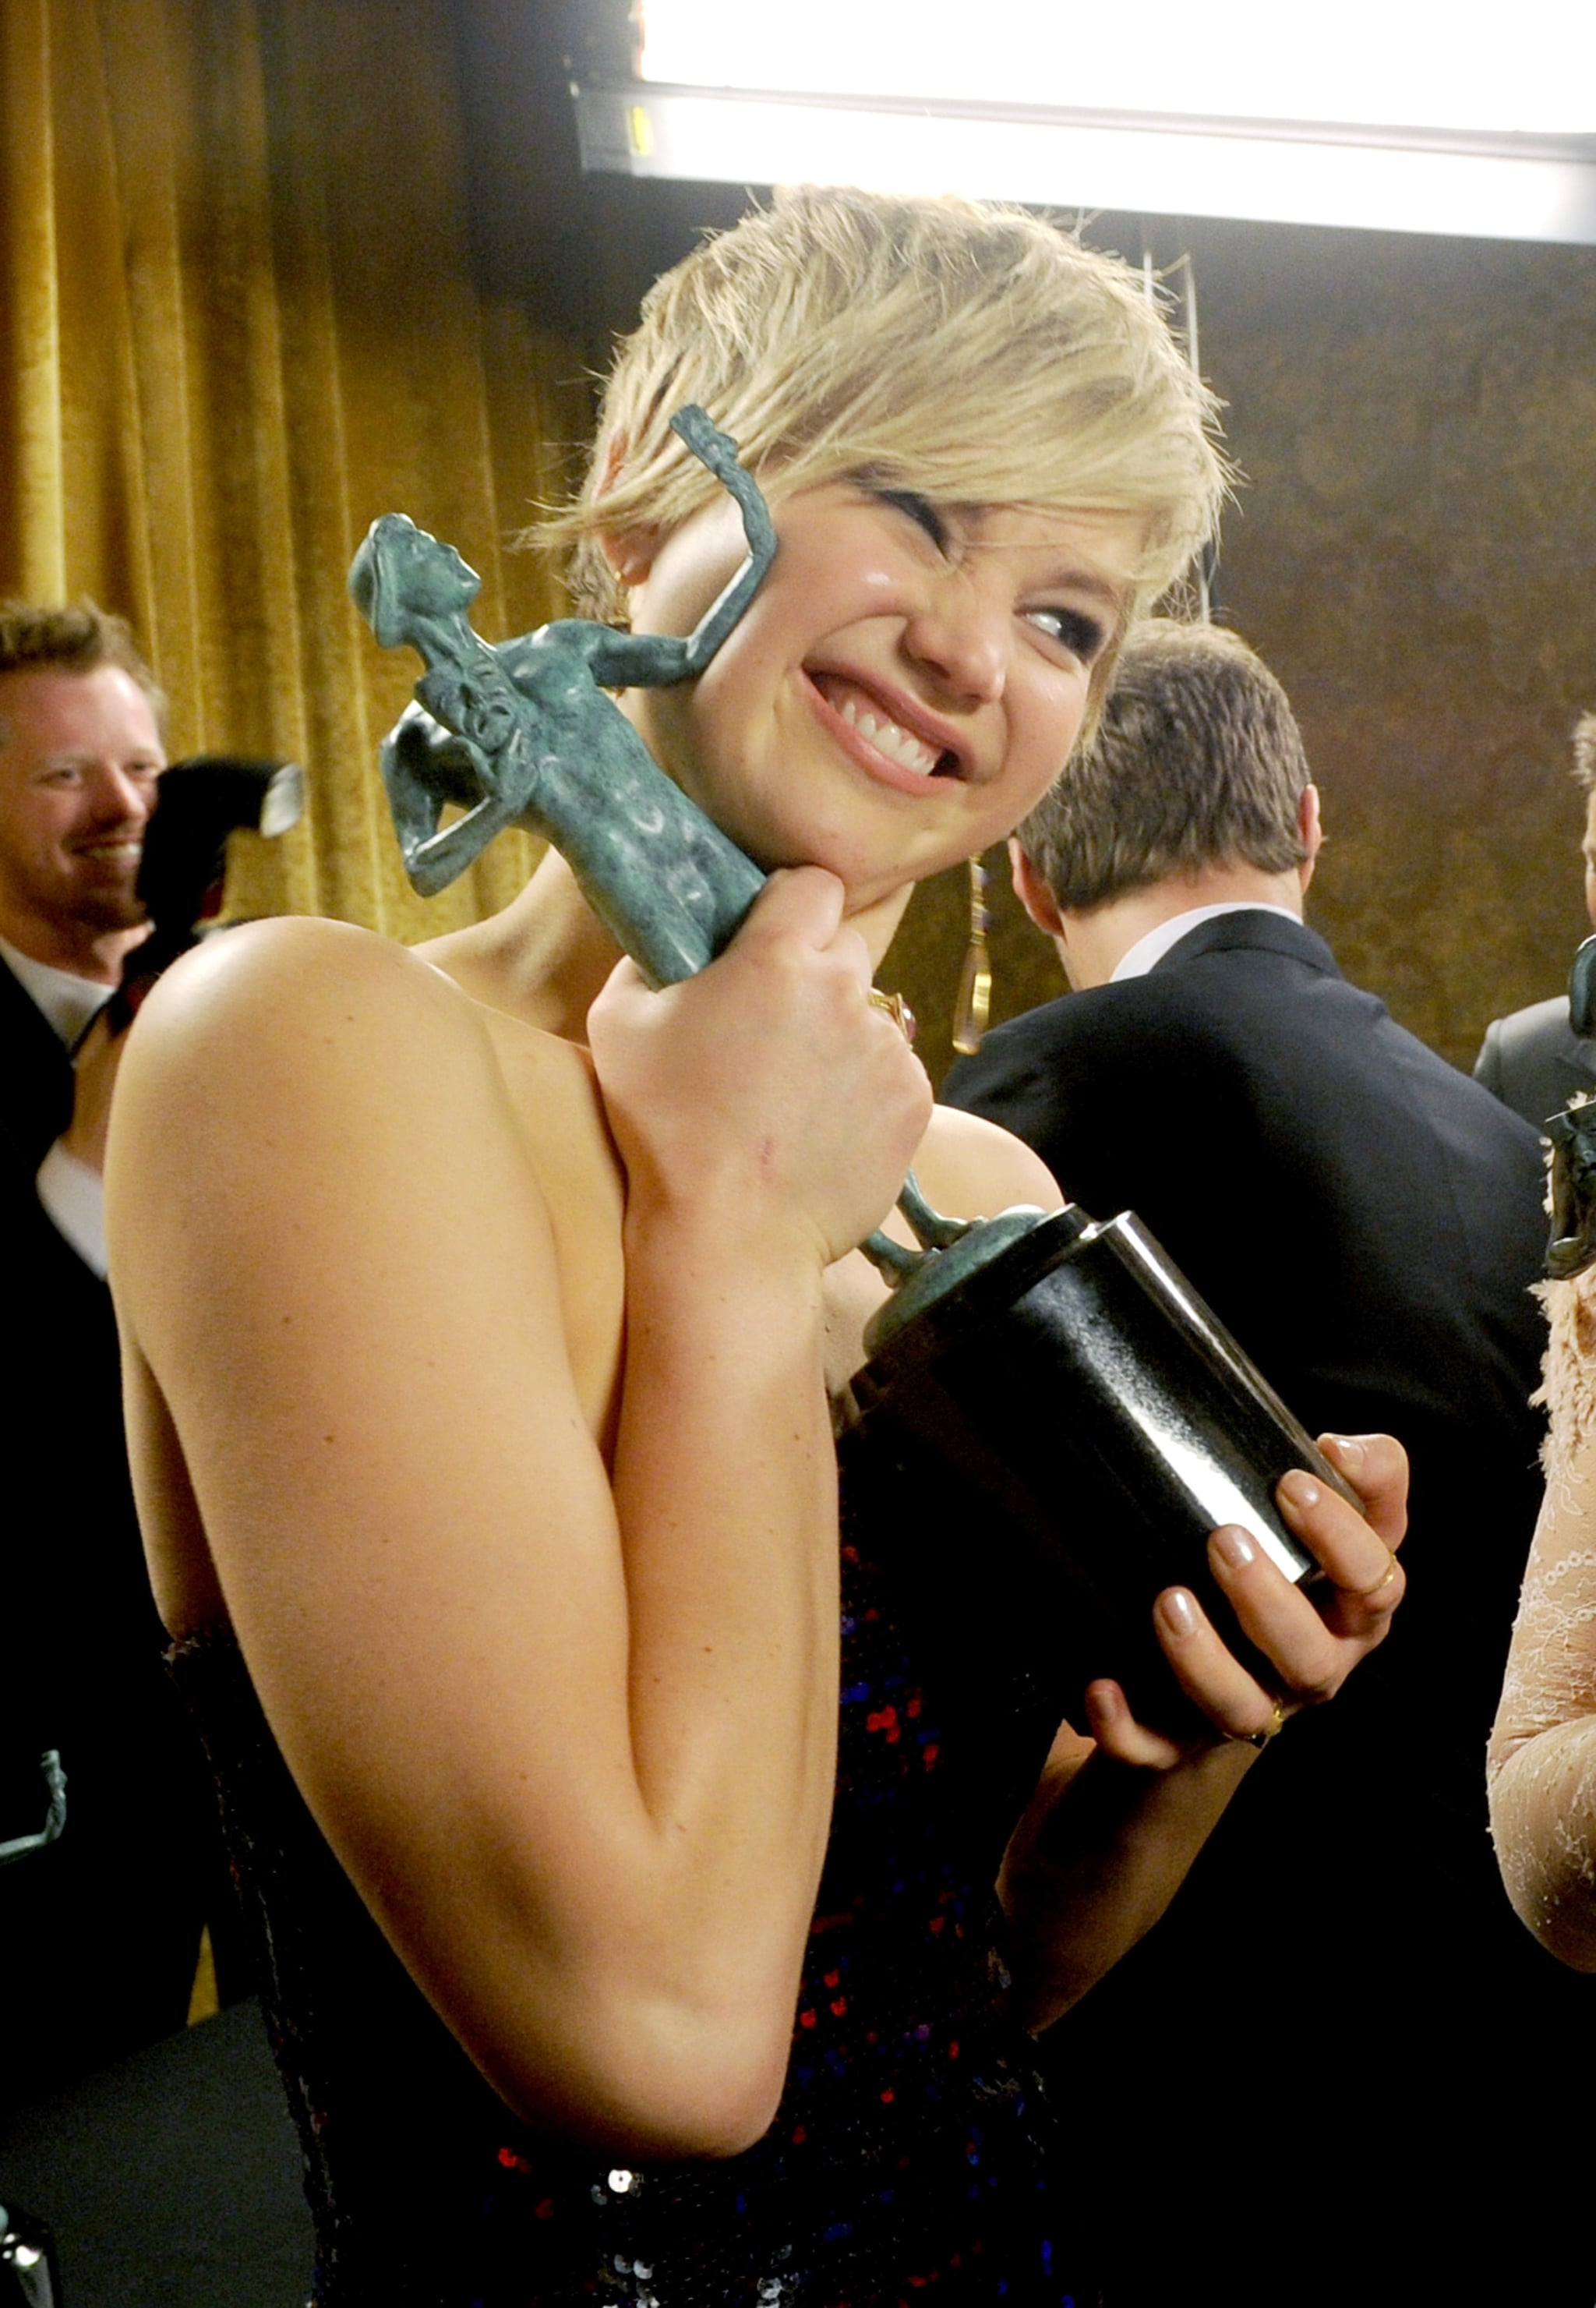 When She Posed With Awards Perfectly — This One's Her New Best Friend